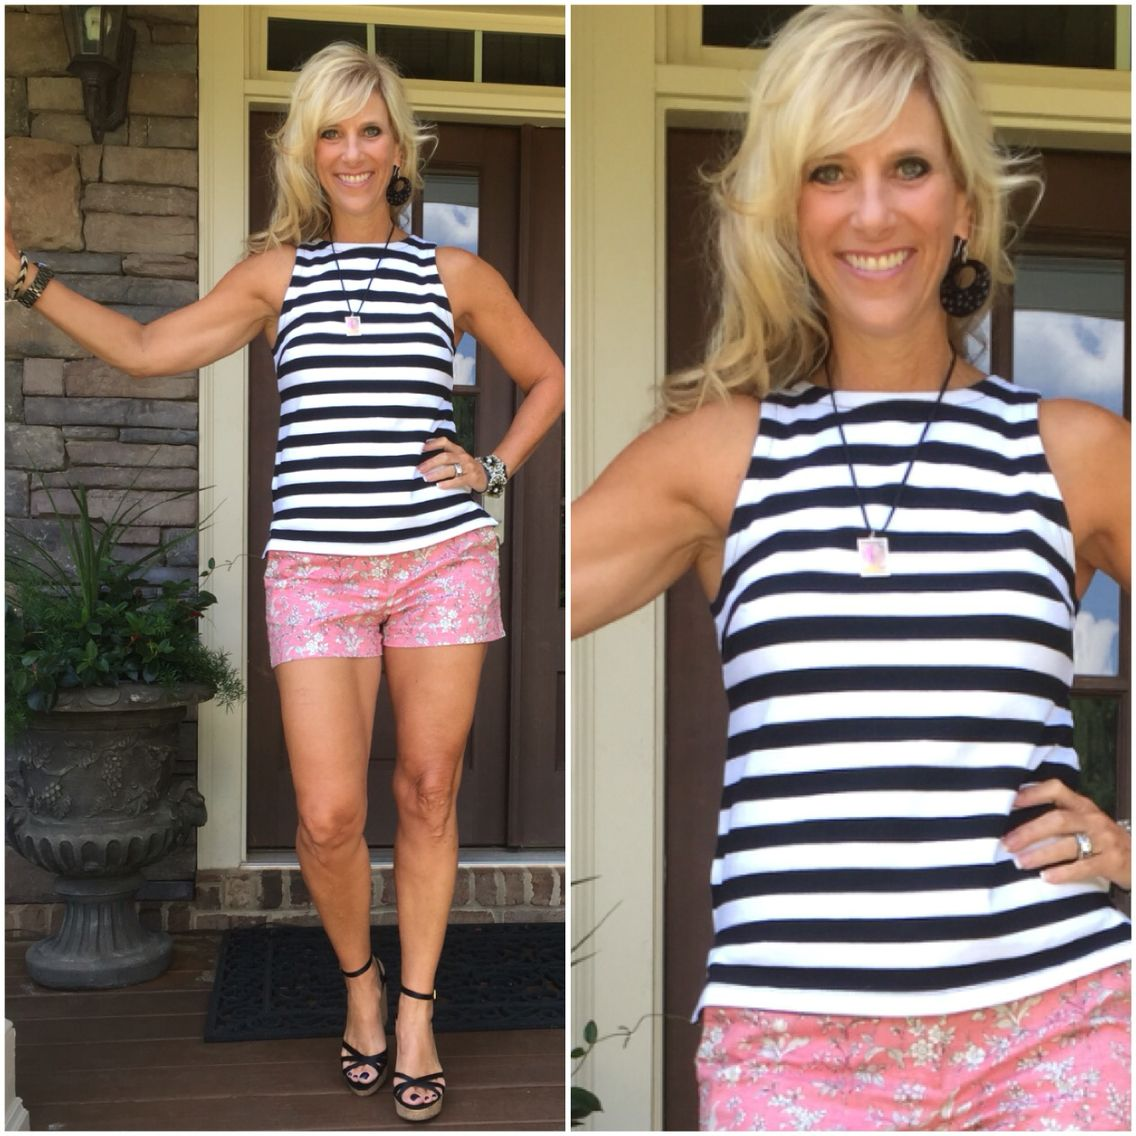 Bold stripes with floral print. Perfect combination. Top #bananarepublic @bananarepublic Shorts @gap #gap. Shoes @ninewest #ninewest www.finleysfivefold.com